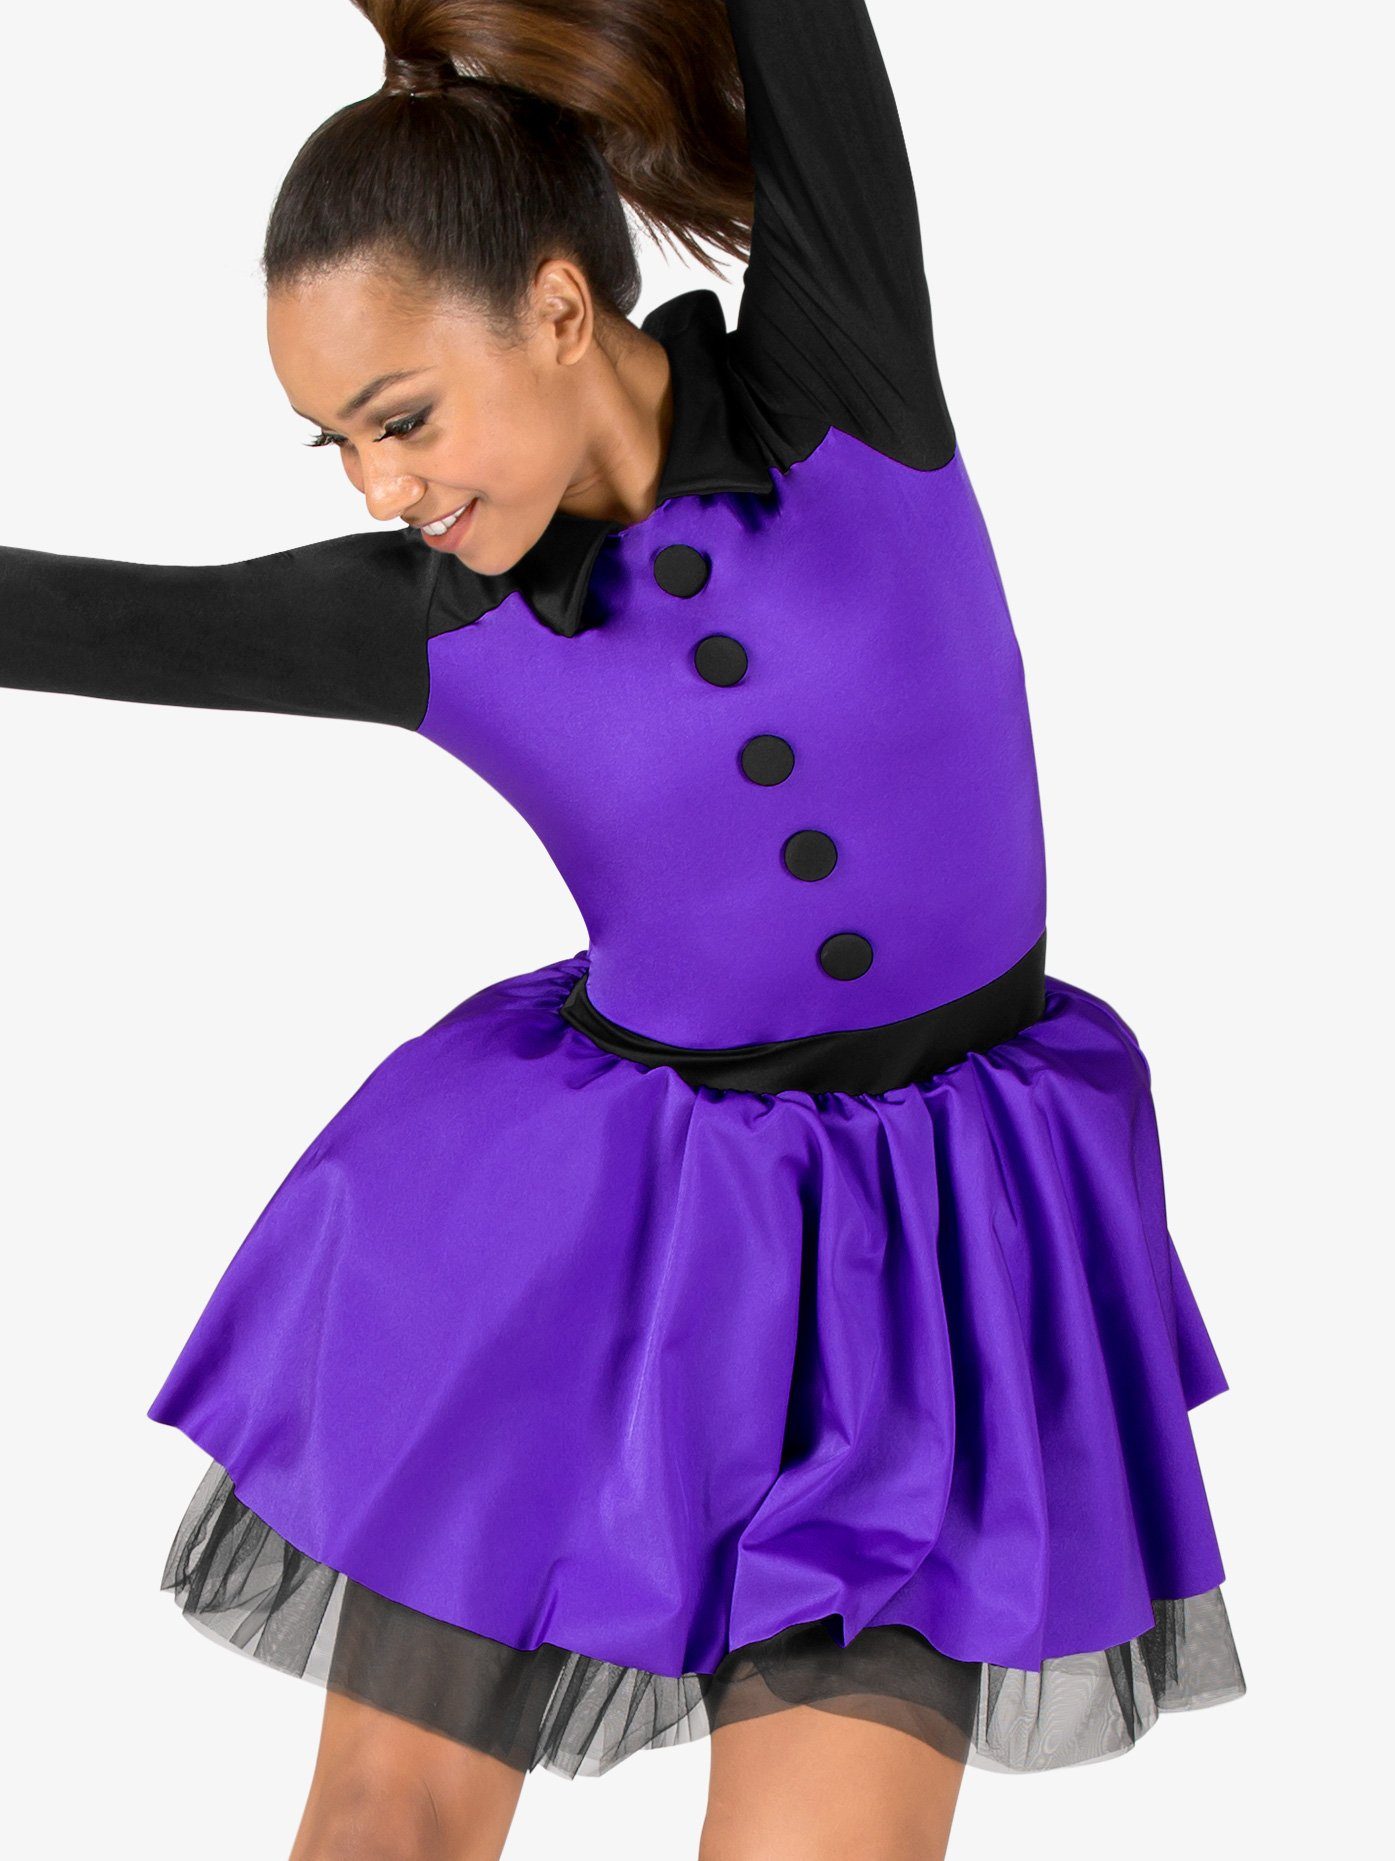 Double Platinum Womens Performance Two-Tone Long Sleeve Tutu Dress N7570